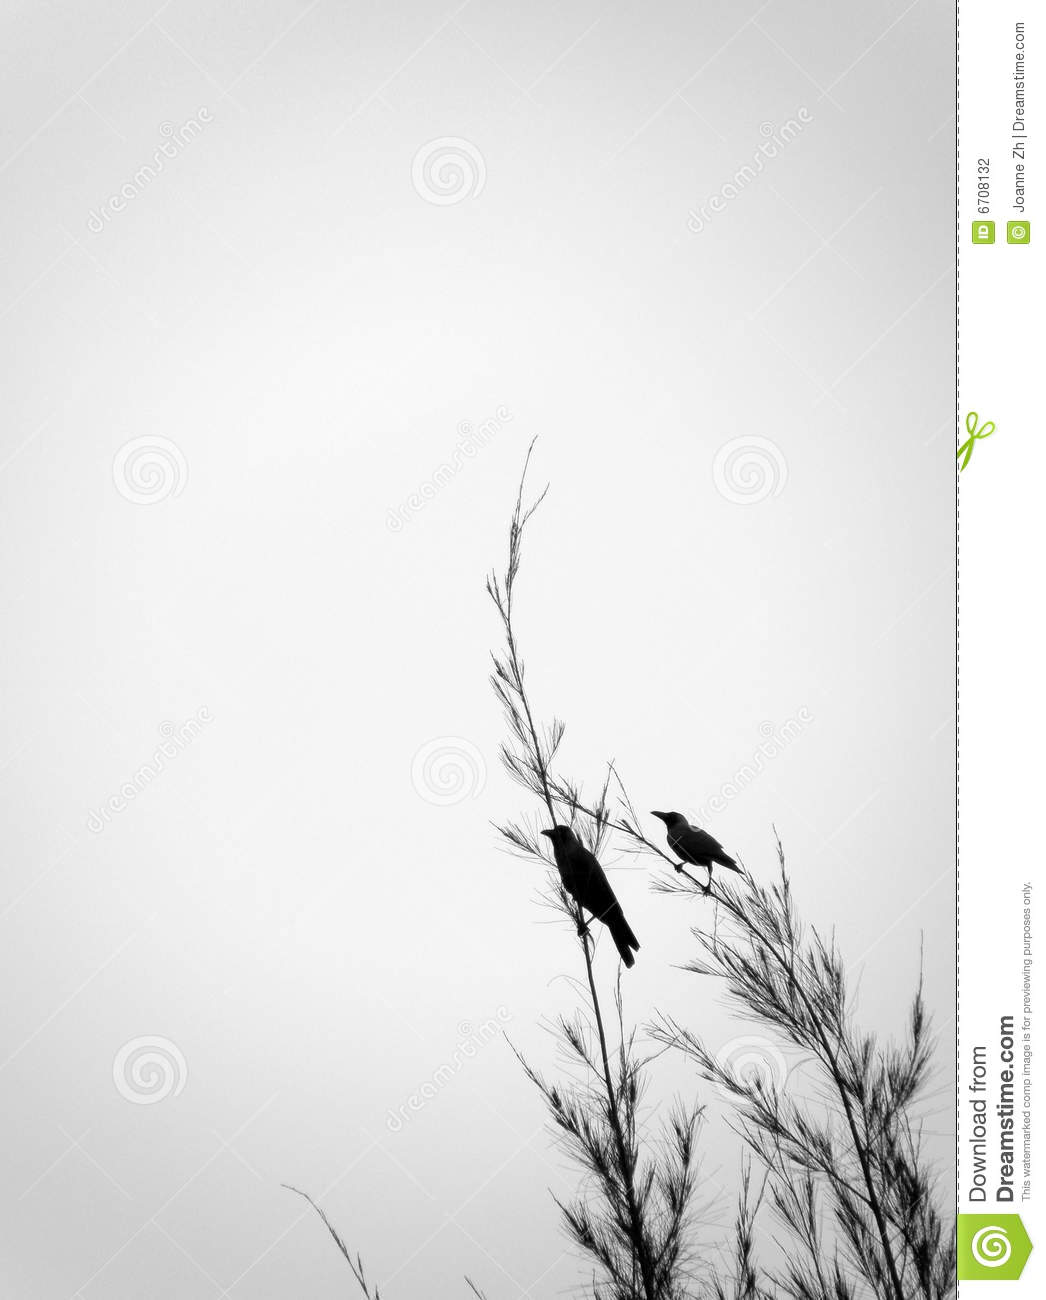 Crows perch on tree top branch